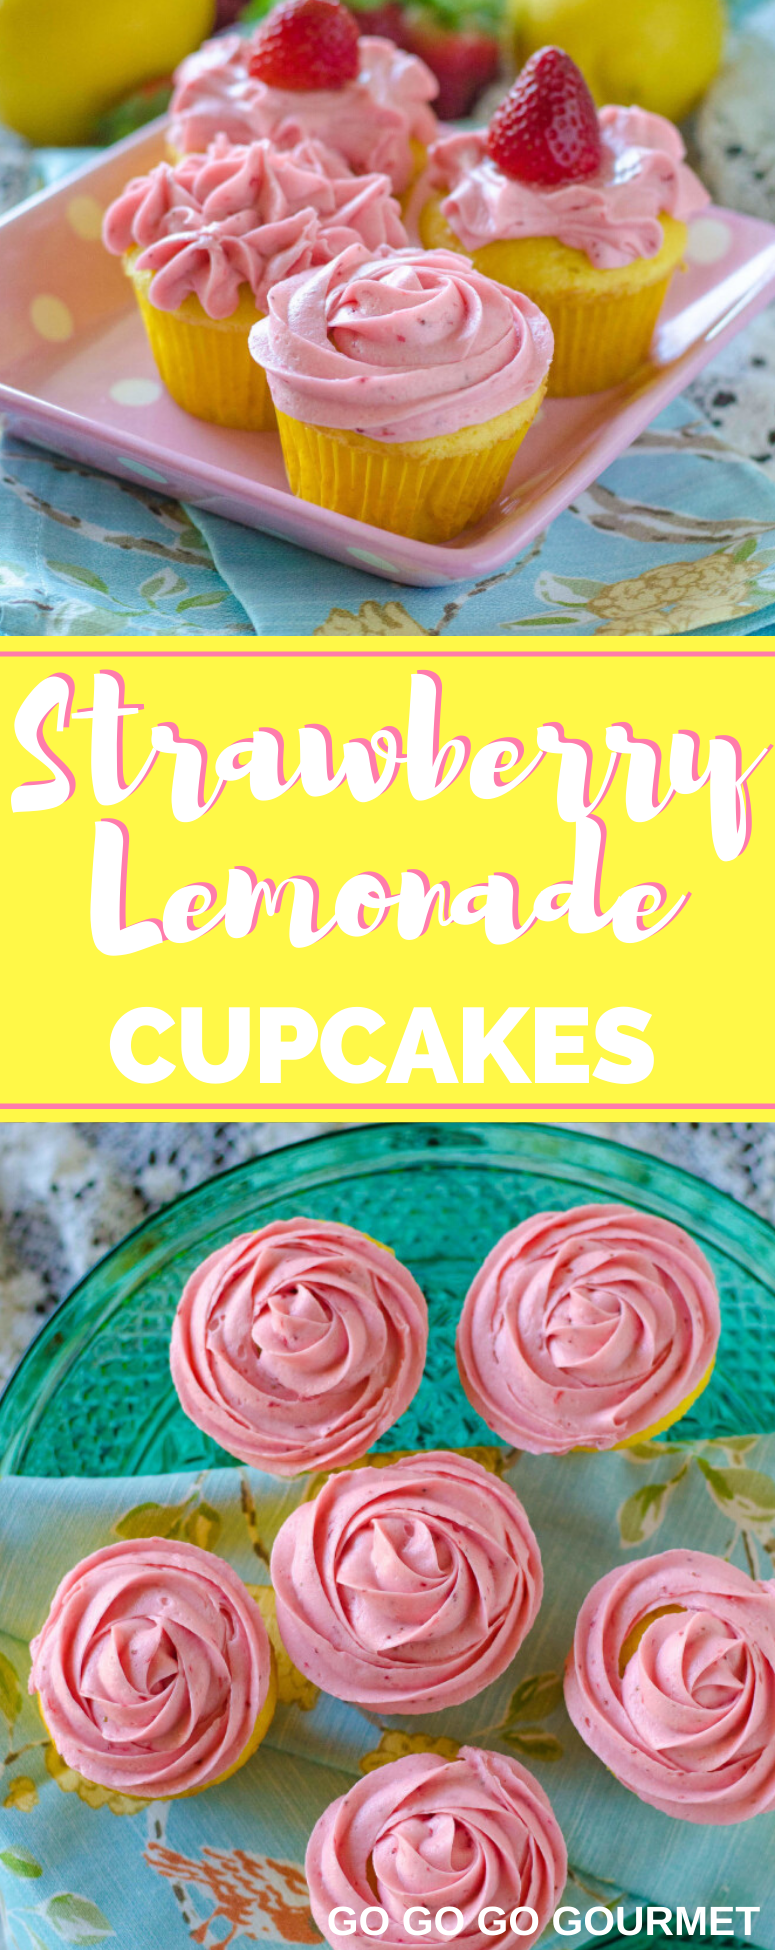 These beautiful, easy Strawberry Lemonade Cupcakes with filling recipe will have you longing for warm summer days! A box lemon cake filled with a lemon curd and topped with a super-easy, super-delicious strawberry buttercream made from scratch! Made even easier with cake mix! #gogogogourmet #strawberrylemonadecupcakes #homemadecupcakes #summerdesserts via @gogogogourmet